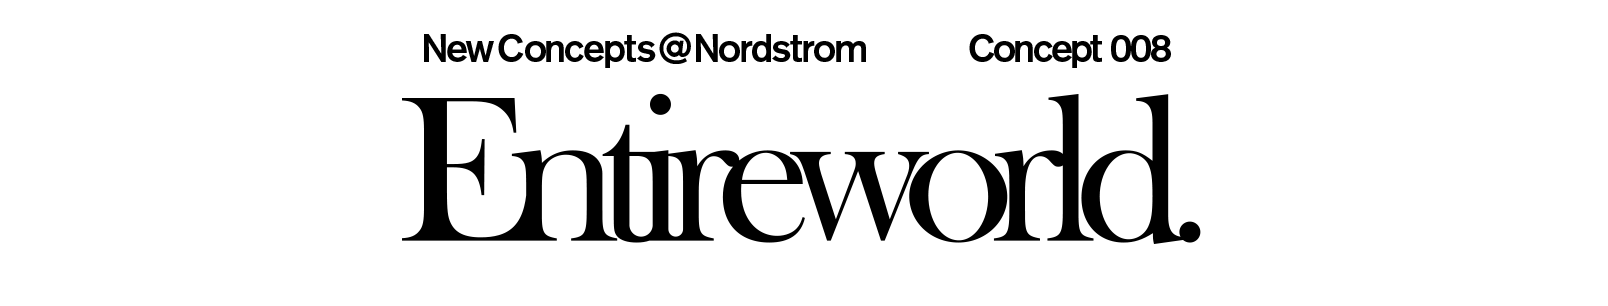 New Concepts at Nordstrom Men: Entireworld.